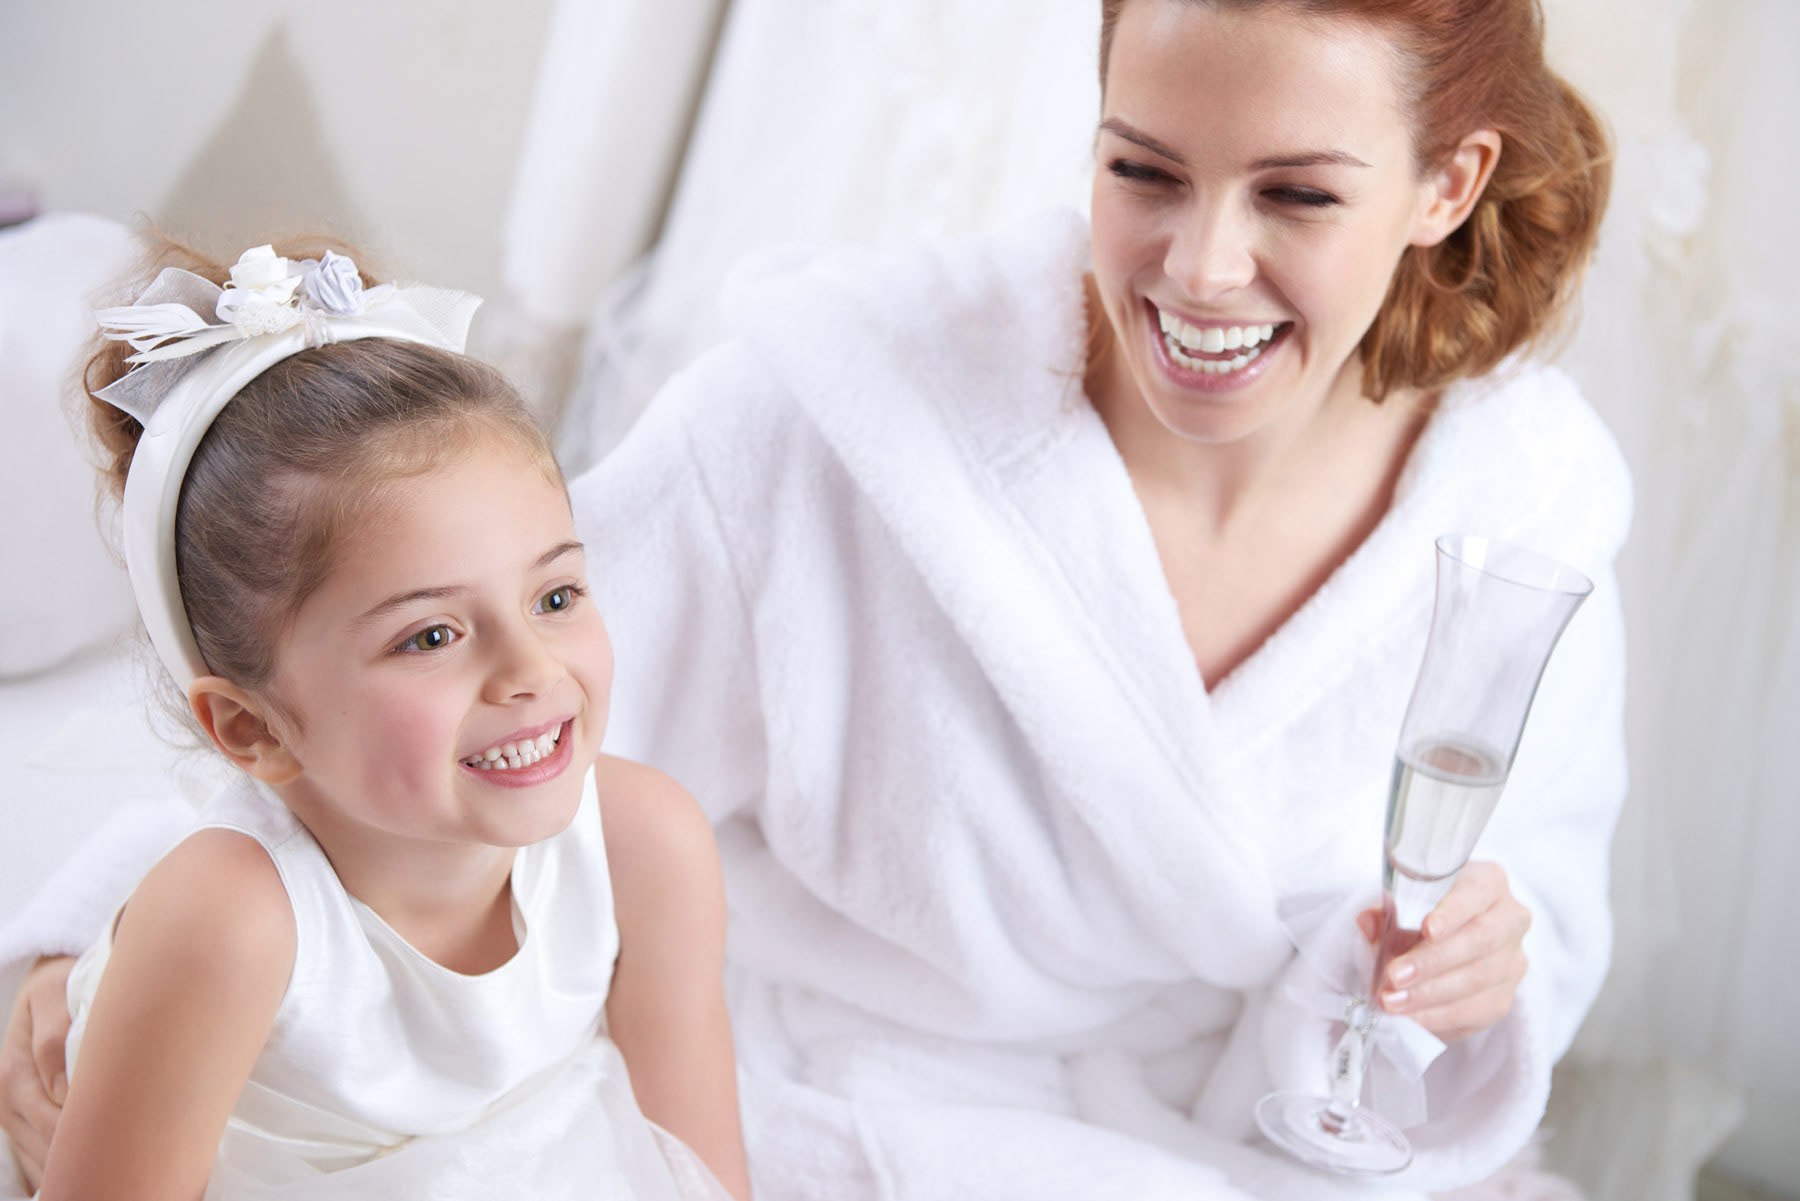 A girl and her young sister getting ready on her wedding day